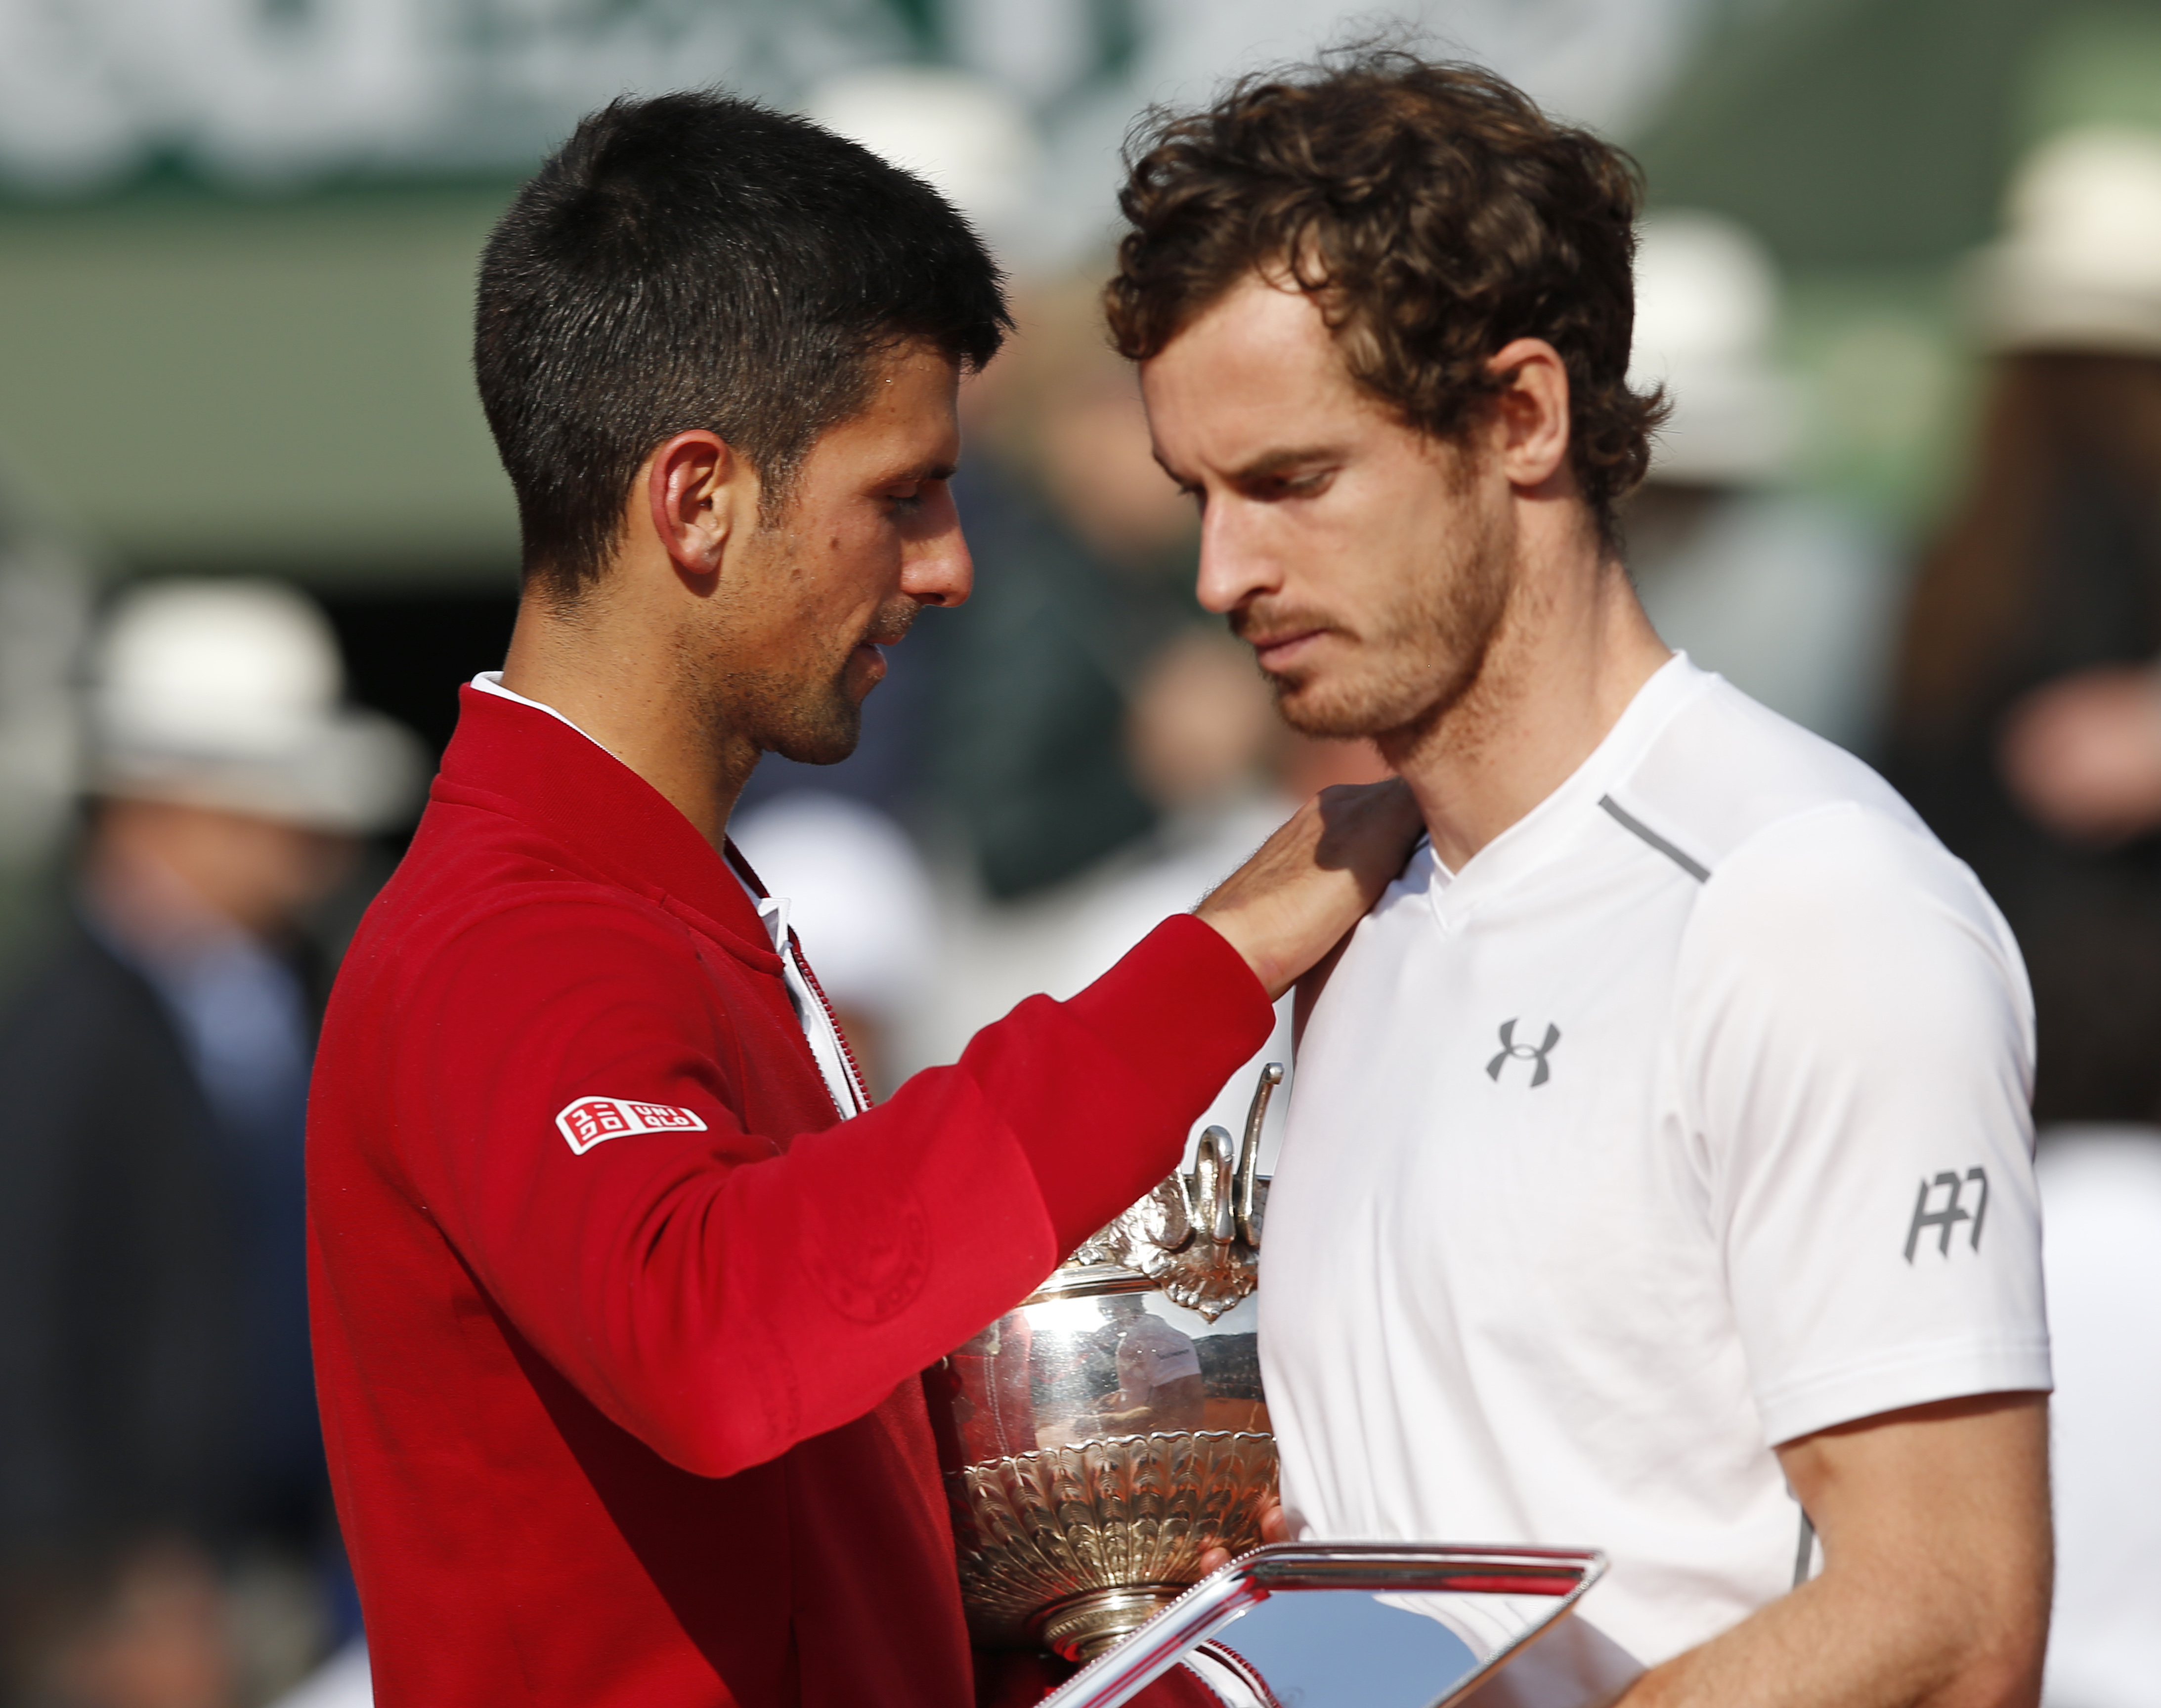 Serbia's Novak Djokovic, left, comforts Britain's Andy Murray who holds the runner-up trophy after losing the final of the French Open tennis tournament against Djokovic in four sets 3-6, 6-1, 6-2, 6-4, at the Roland Garros stadium in Paris, France, Sunda